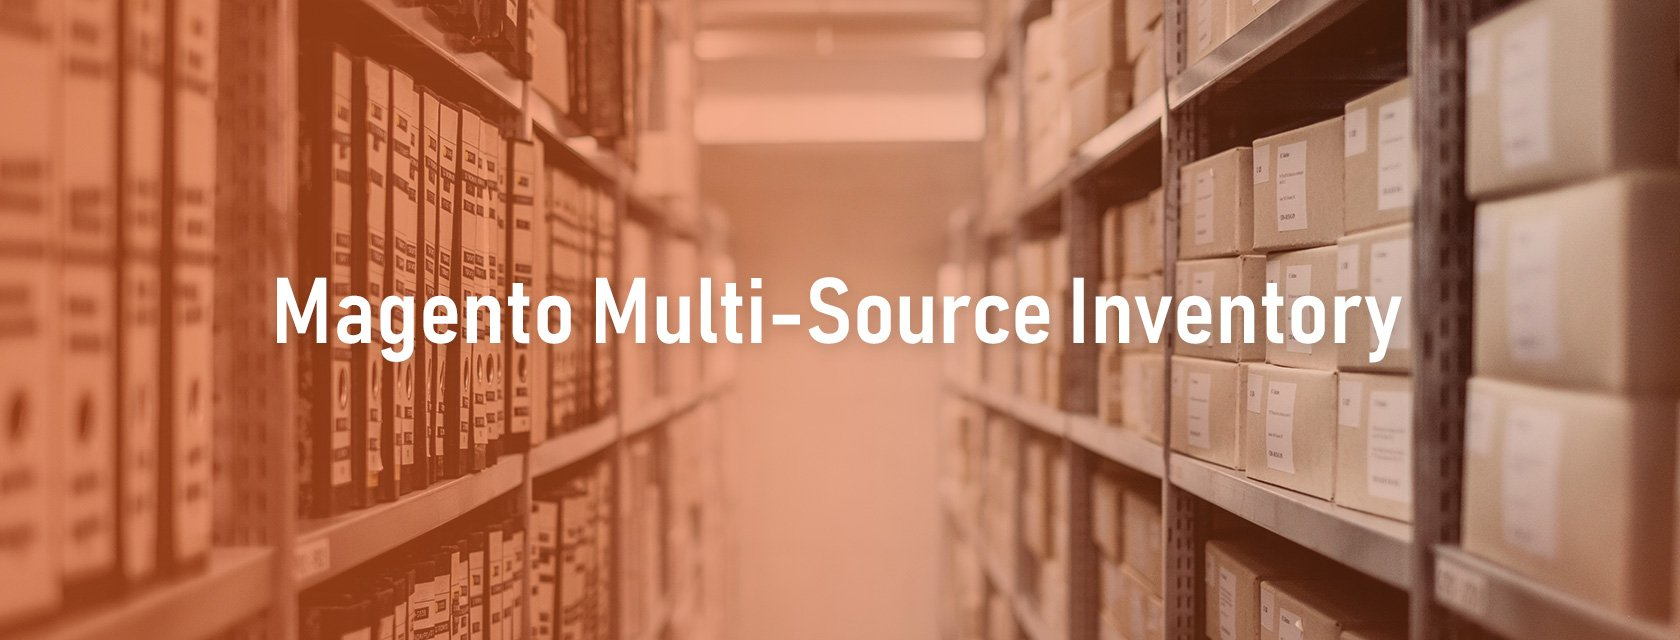 What is Magento Multi-Source Inventory and how to implement them